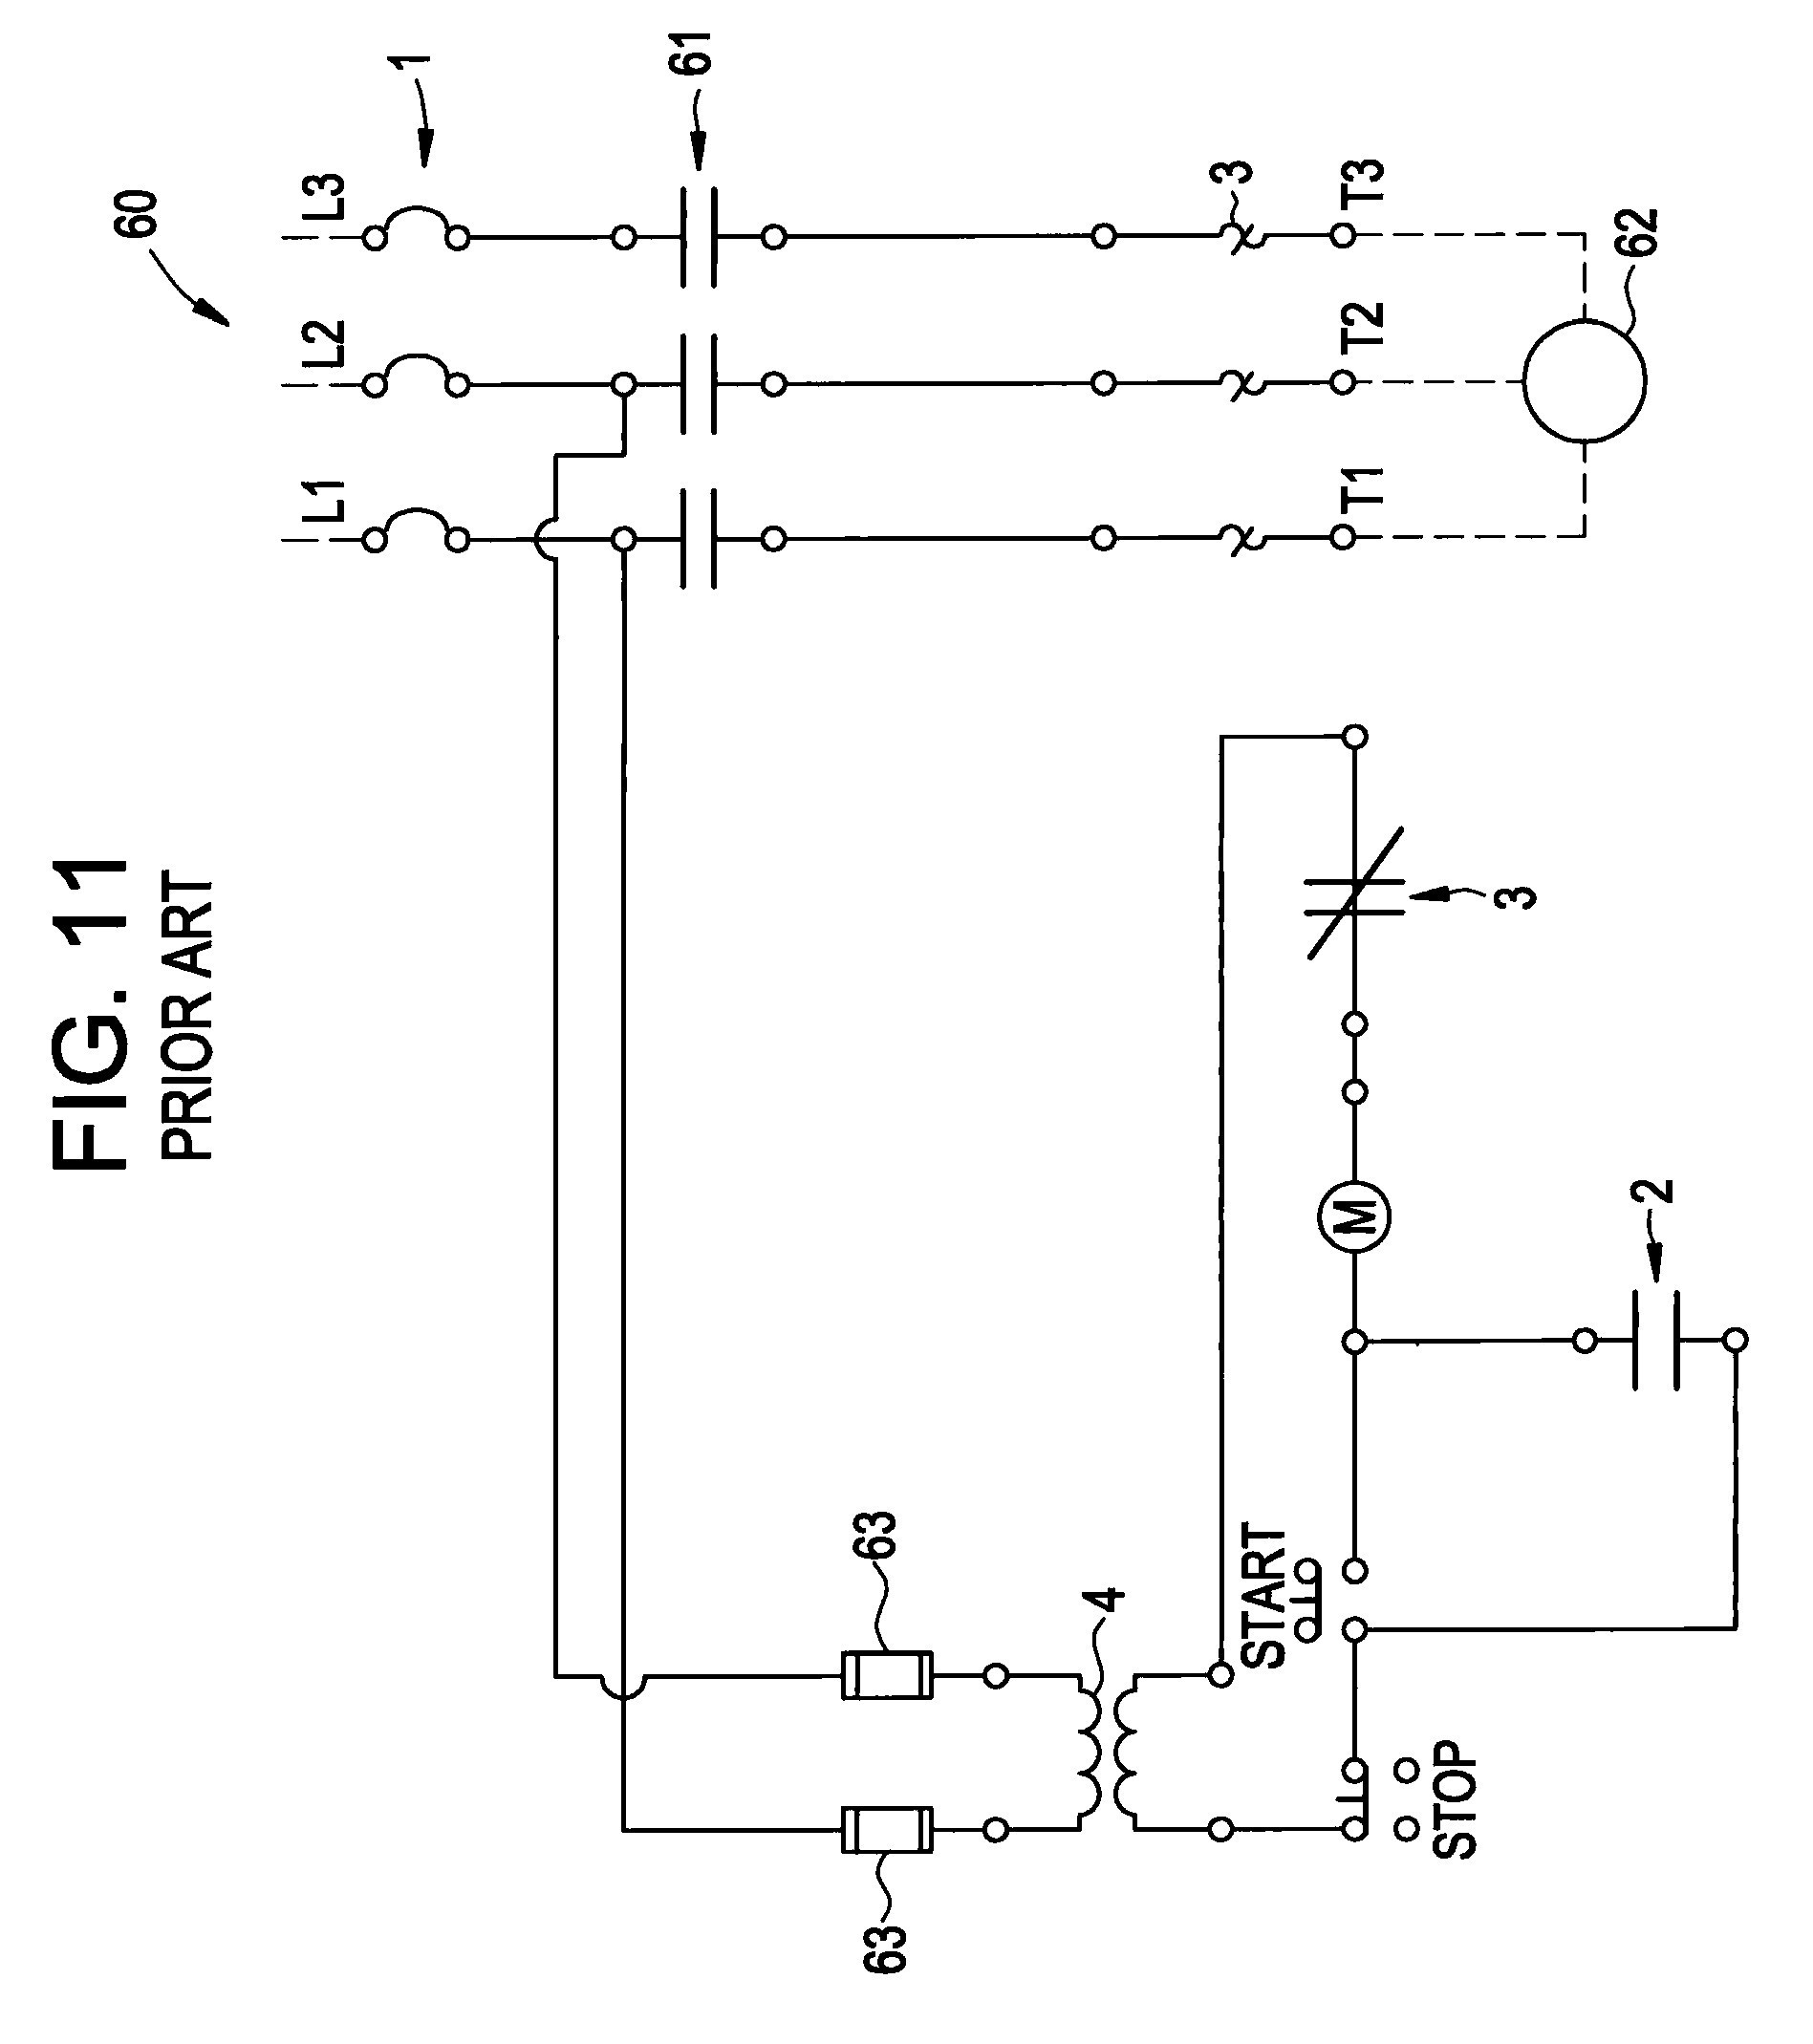 Horn Wiring Diagram with Relay Awesome Horn Relay Wiring Diagram for Yamaha Blaster Stator Wiring